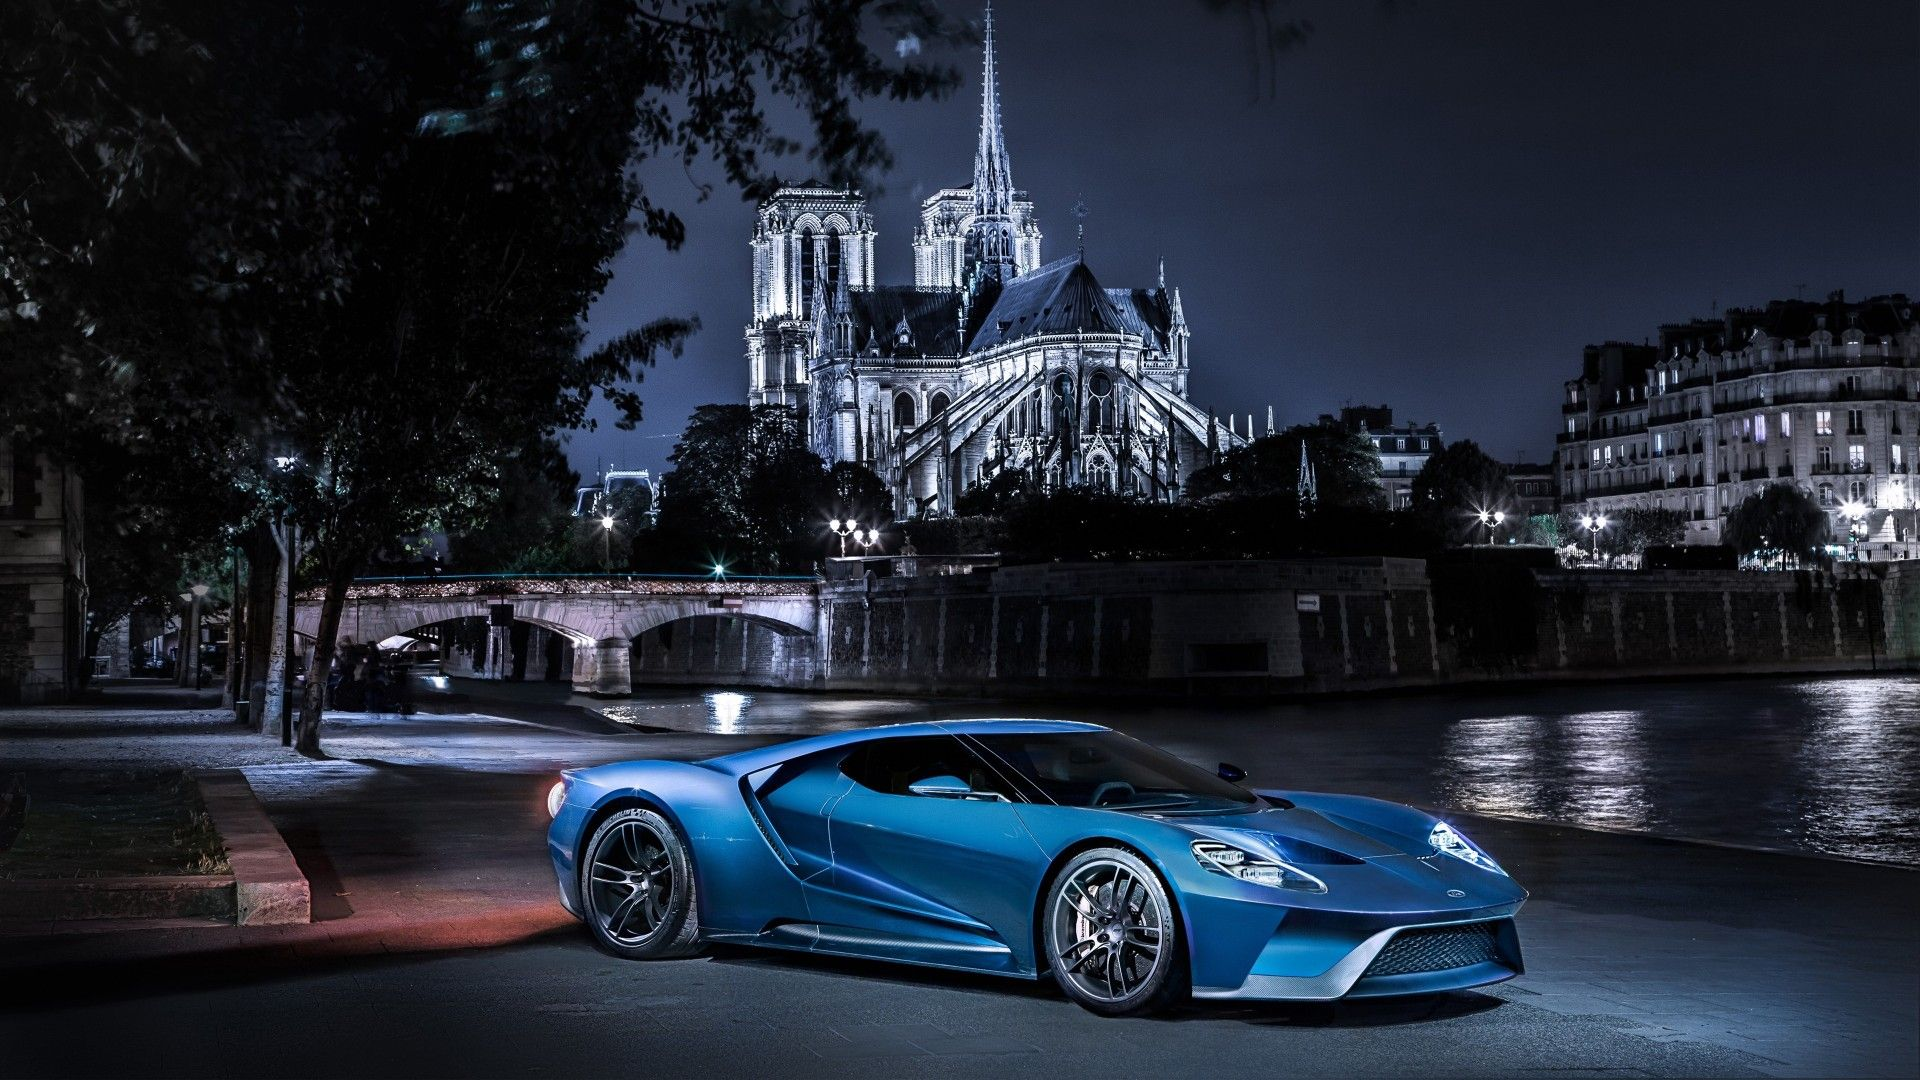 Pin By Martin Zednicek On Auta Mitirky Supercars Wallpaper Car Wallpapers Hd Wallpapers Of Cars